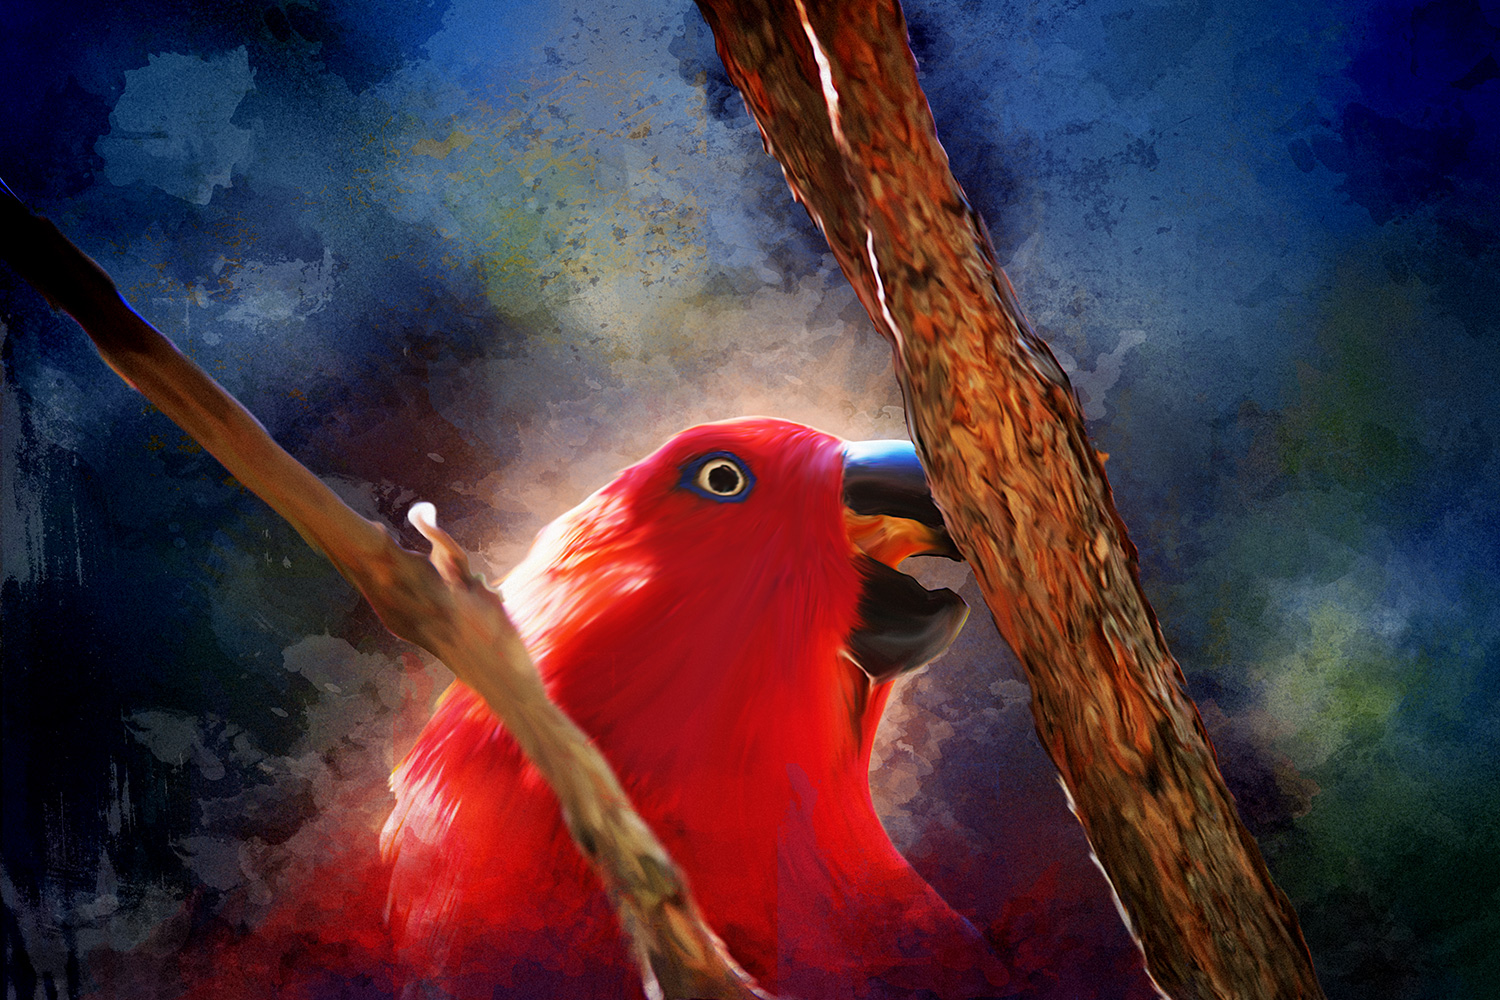 Sourcing reliable Eclectus Parrot information